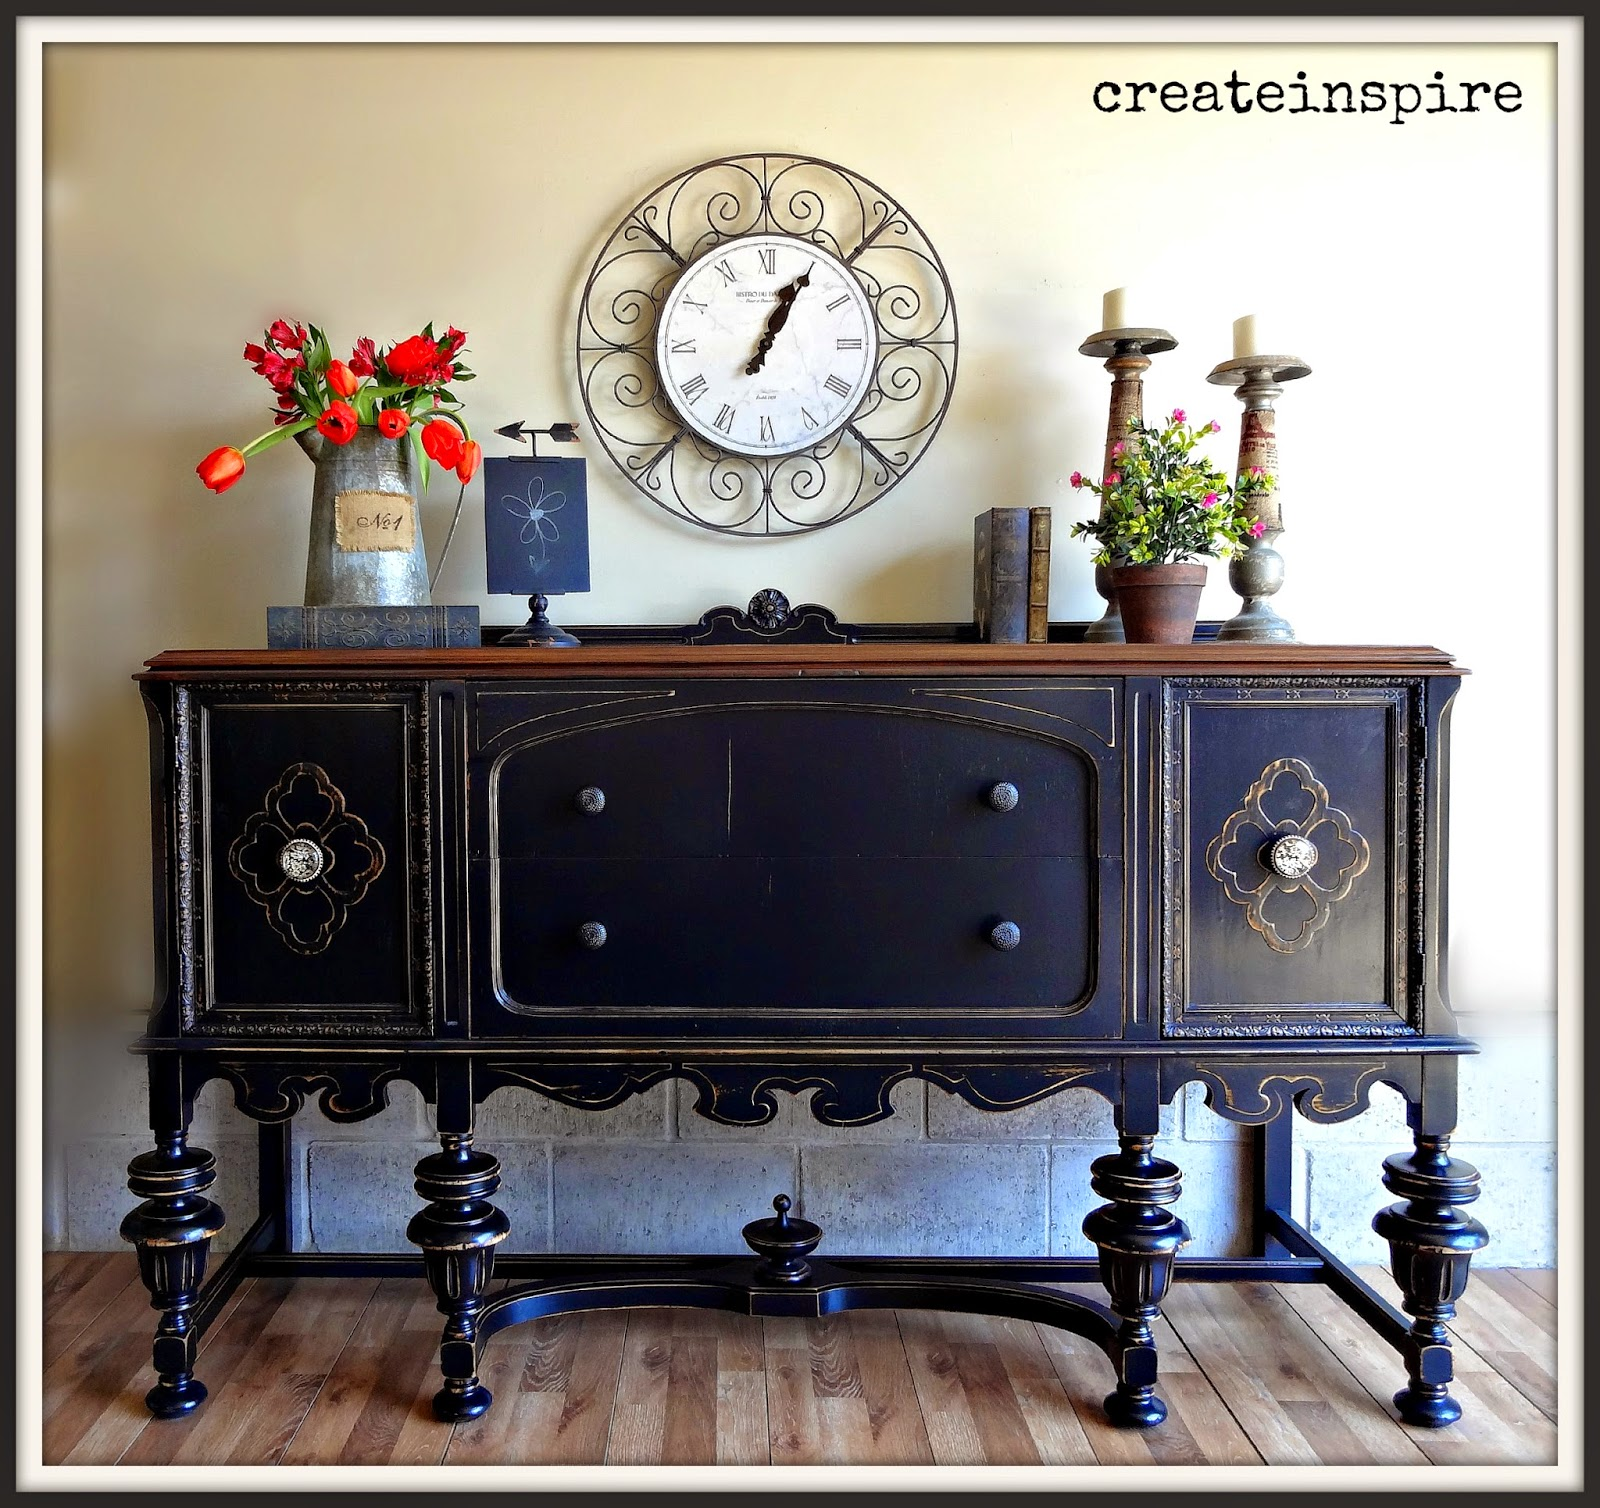 Createinspire antique buffet in black - Furniture picture ...